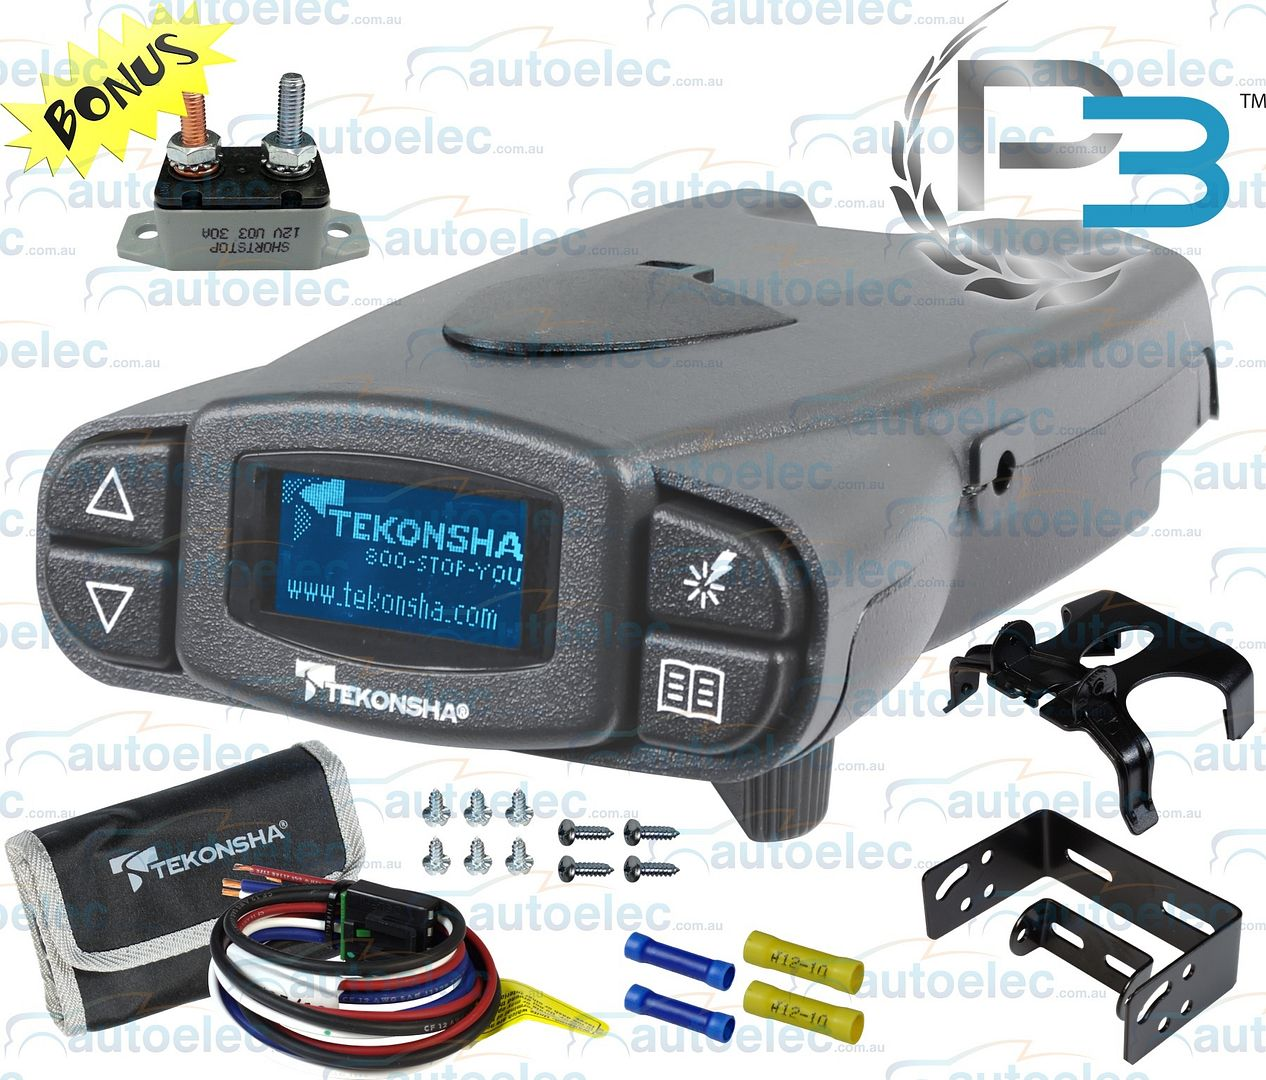 Tekonsha Voyager Electric Brake Controller Wiring Diagram